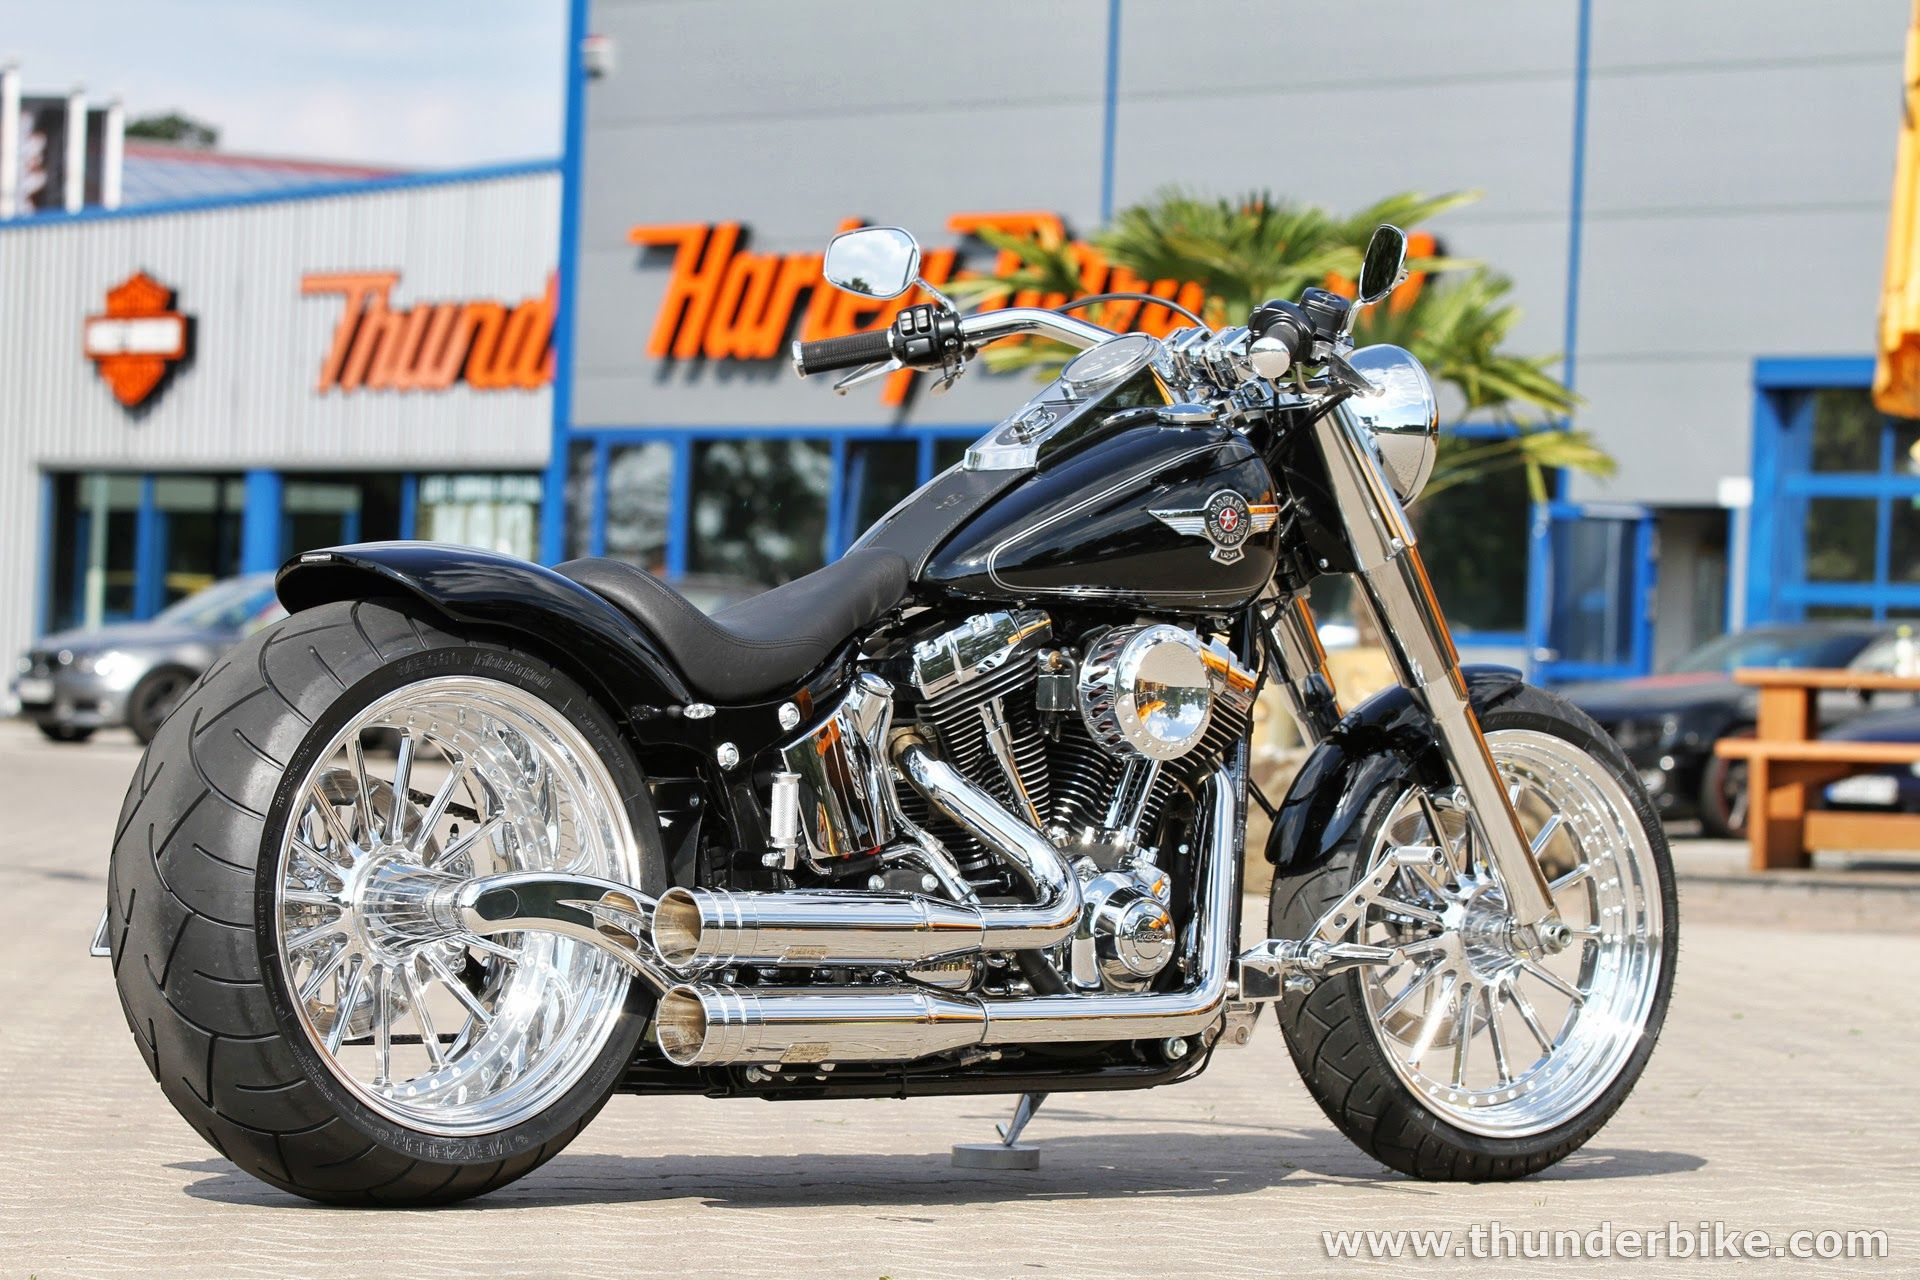 Thunderbike From Time To Time We Create Display Bikes To Show Our Latest Parts This Harley D Harley Davidson Motorcycles Harley Bikes Harley Davidson Bikes